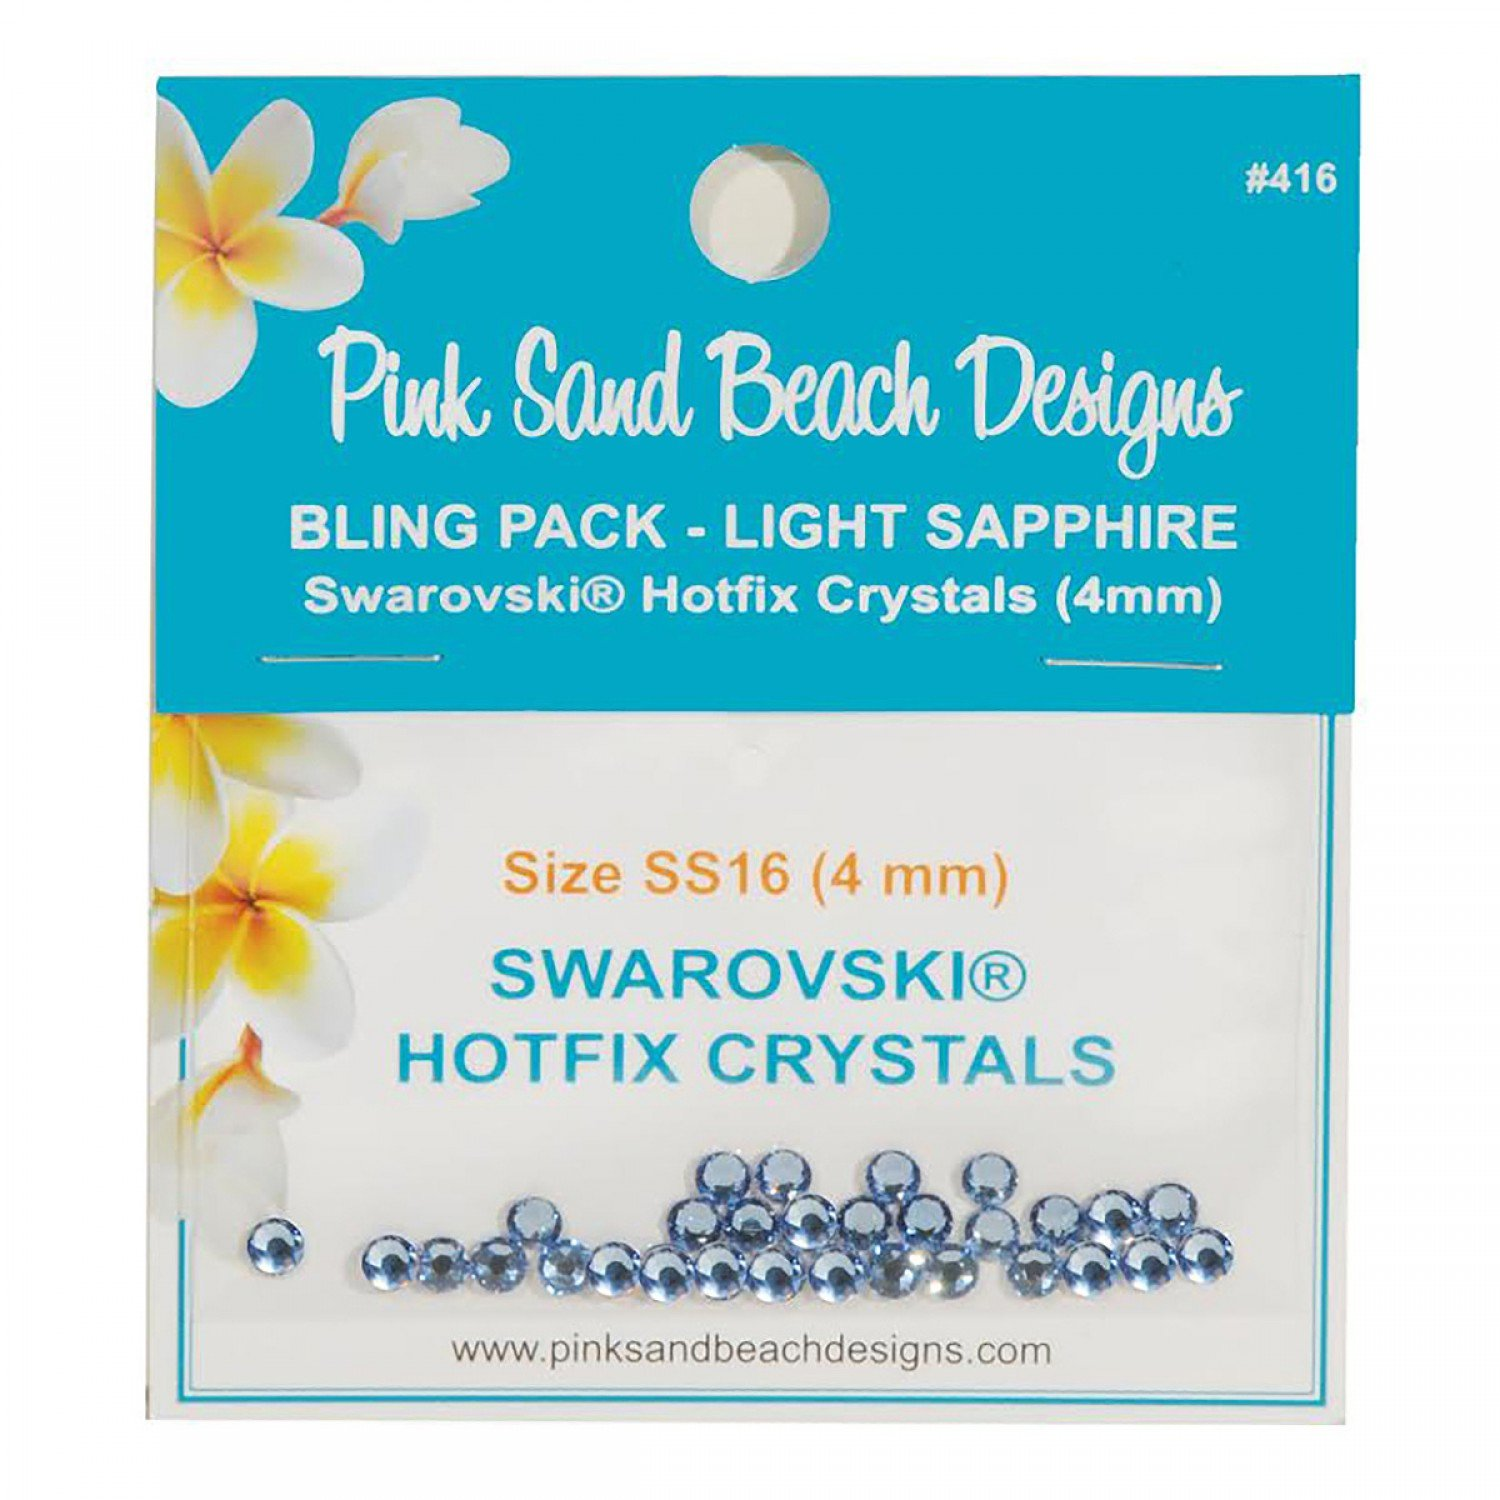 Bling Pack - Swarovski Hotfix Crystal 4mm - Light Sapphire